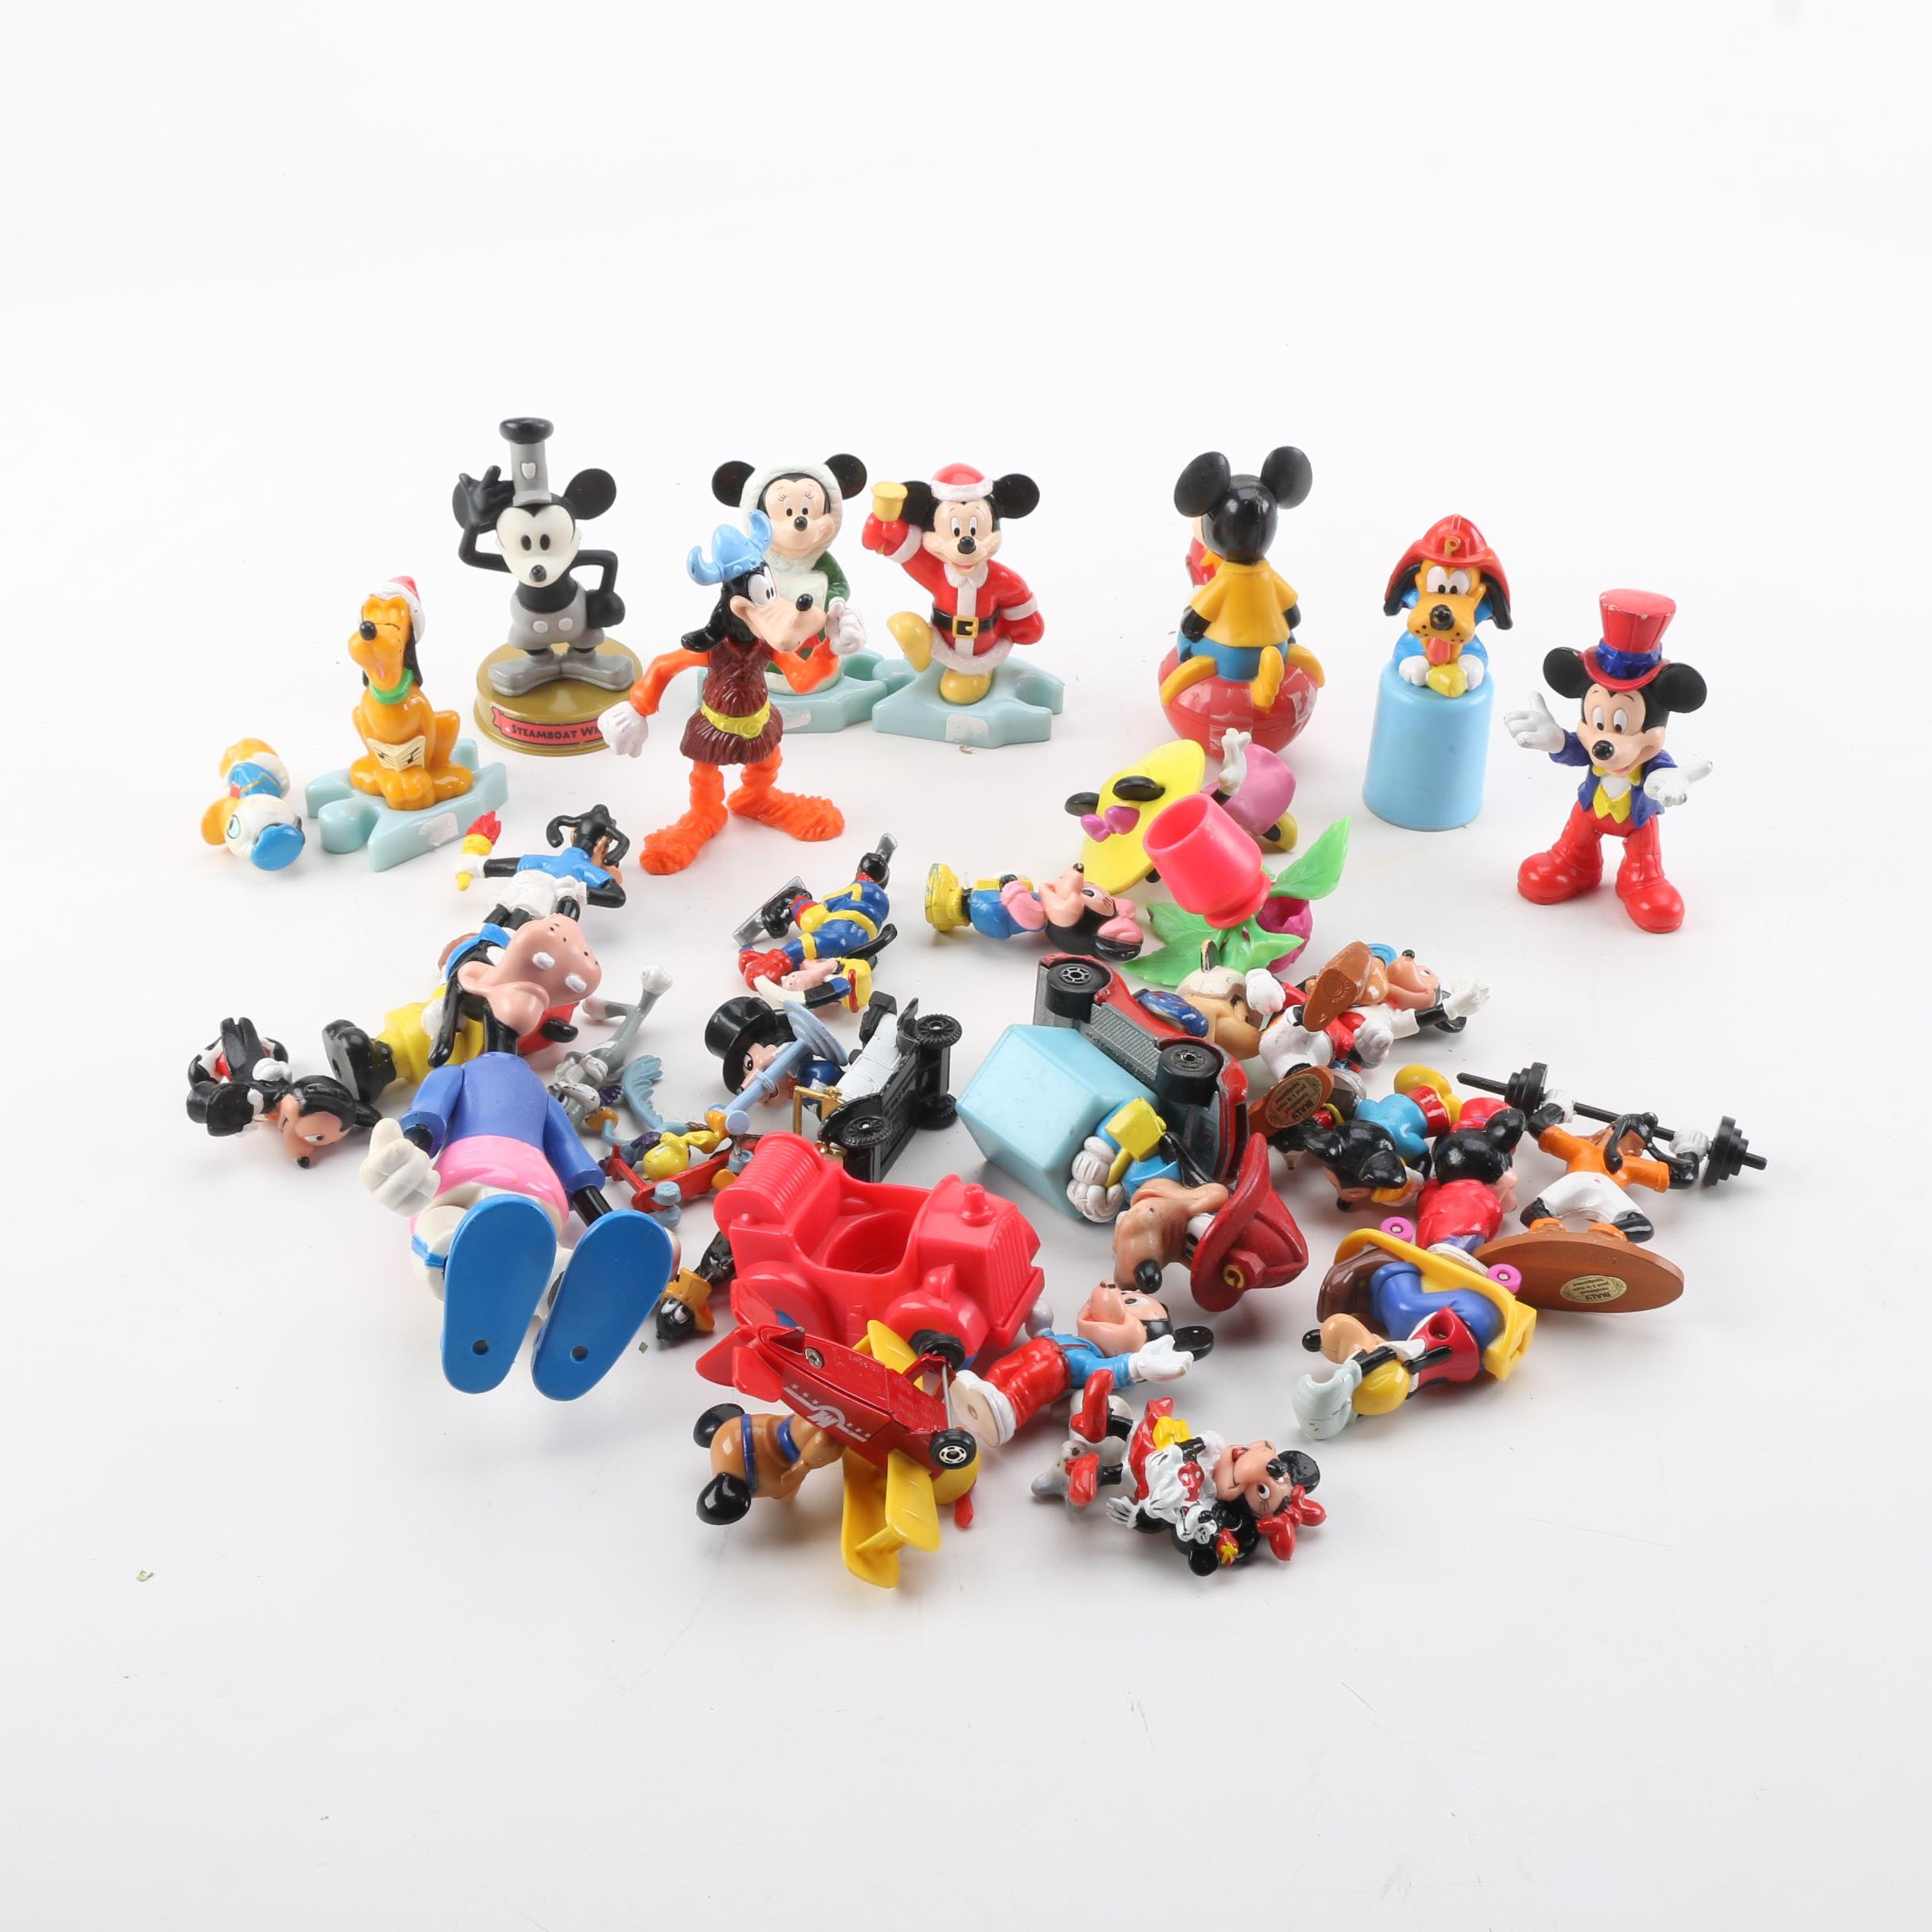 Collection of Disney Mini Plastic Toys and Figurines